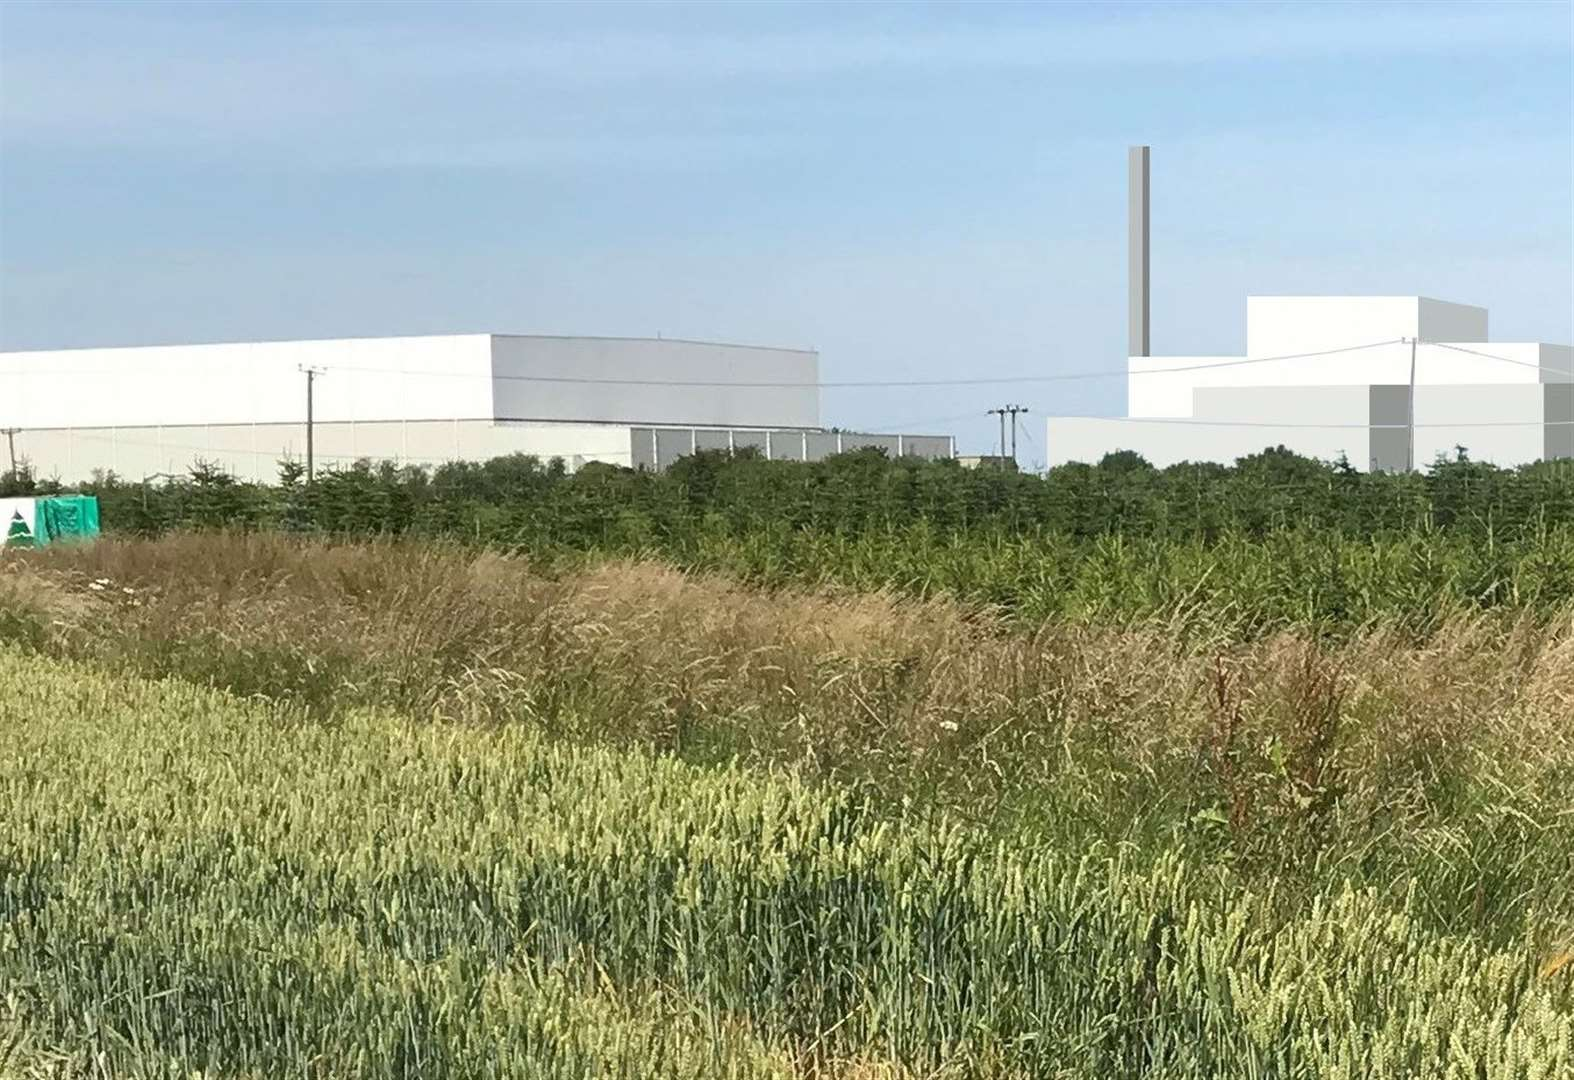 'No incinerator in Wisbech' campaign launched as news of plans for a £300 million project is announced